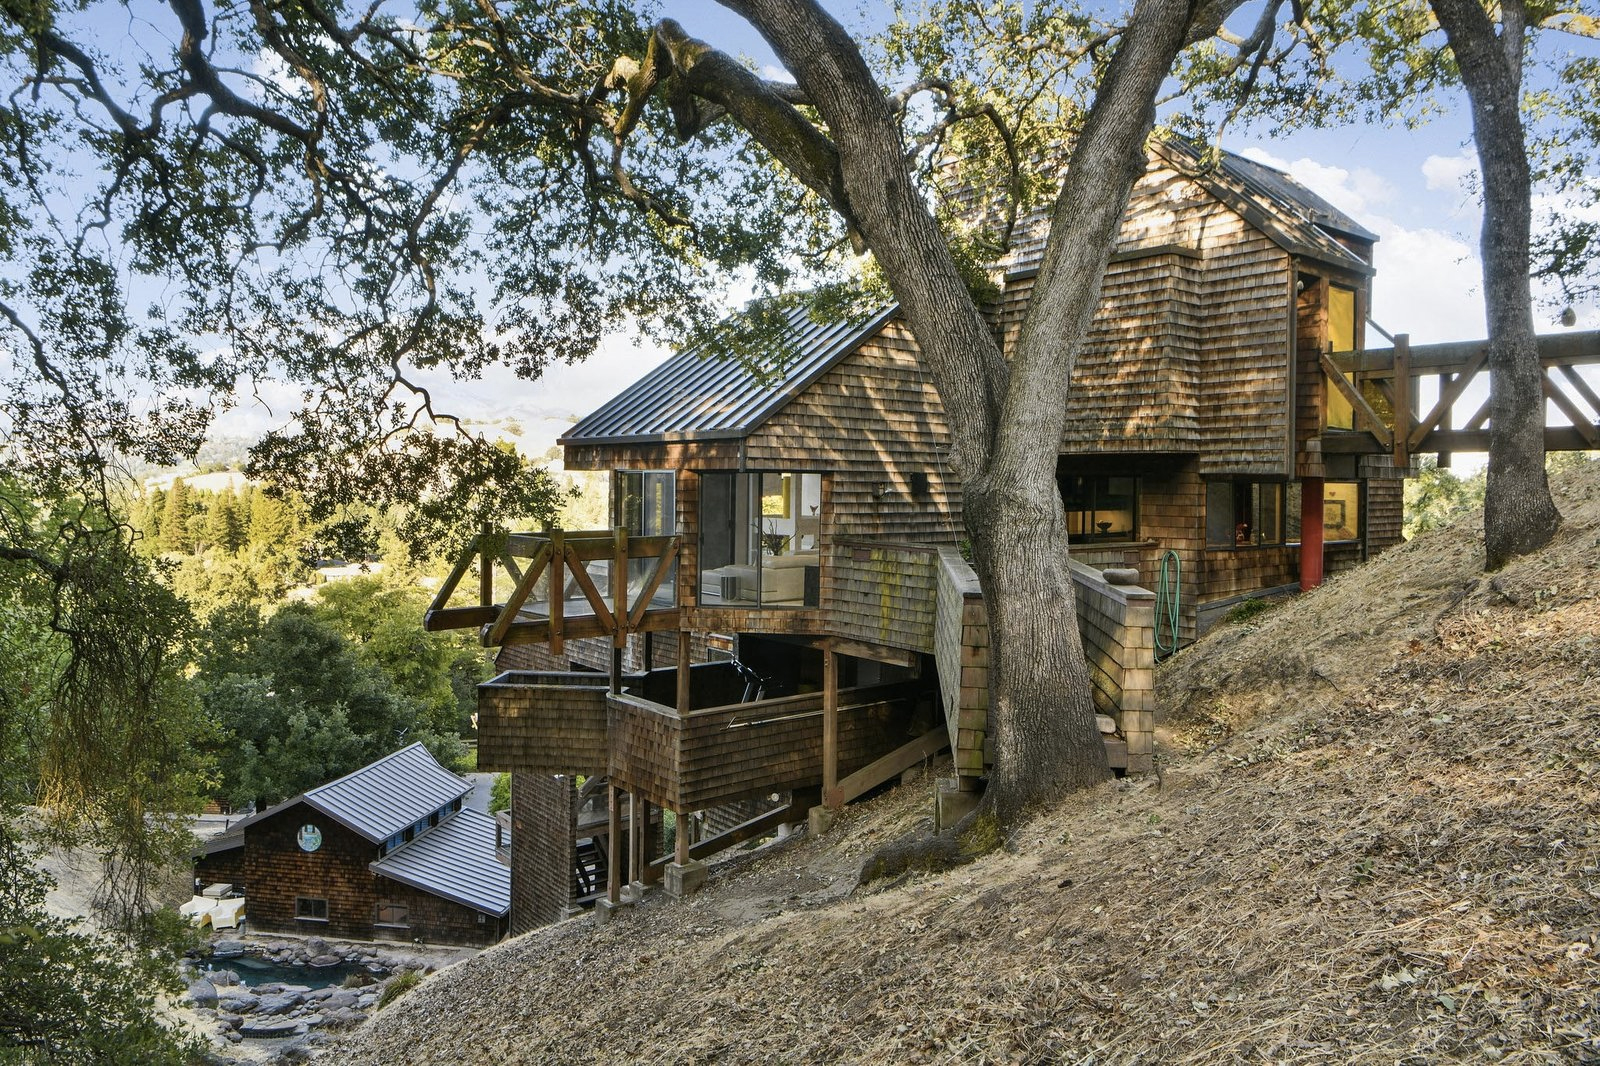 This Californian mountain home is peak '80s style – and it has a private cable car to boot